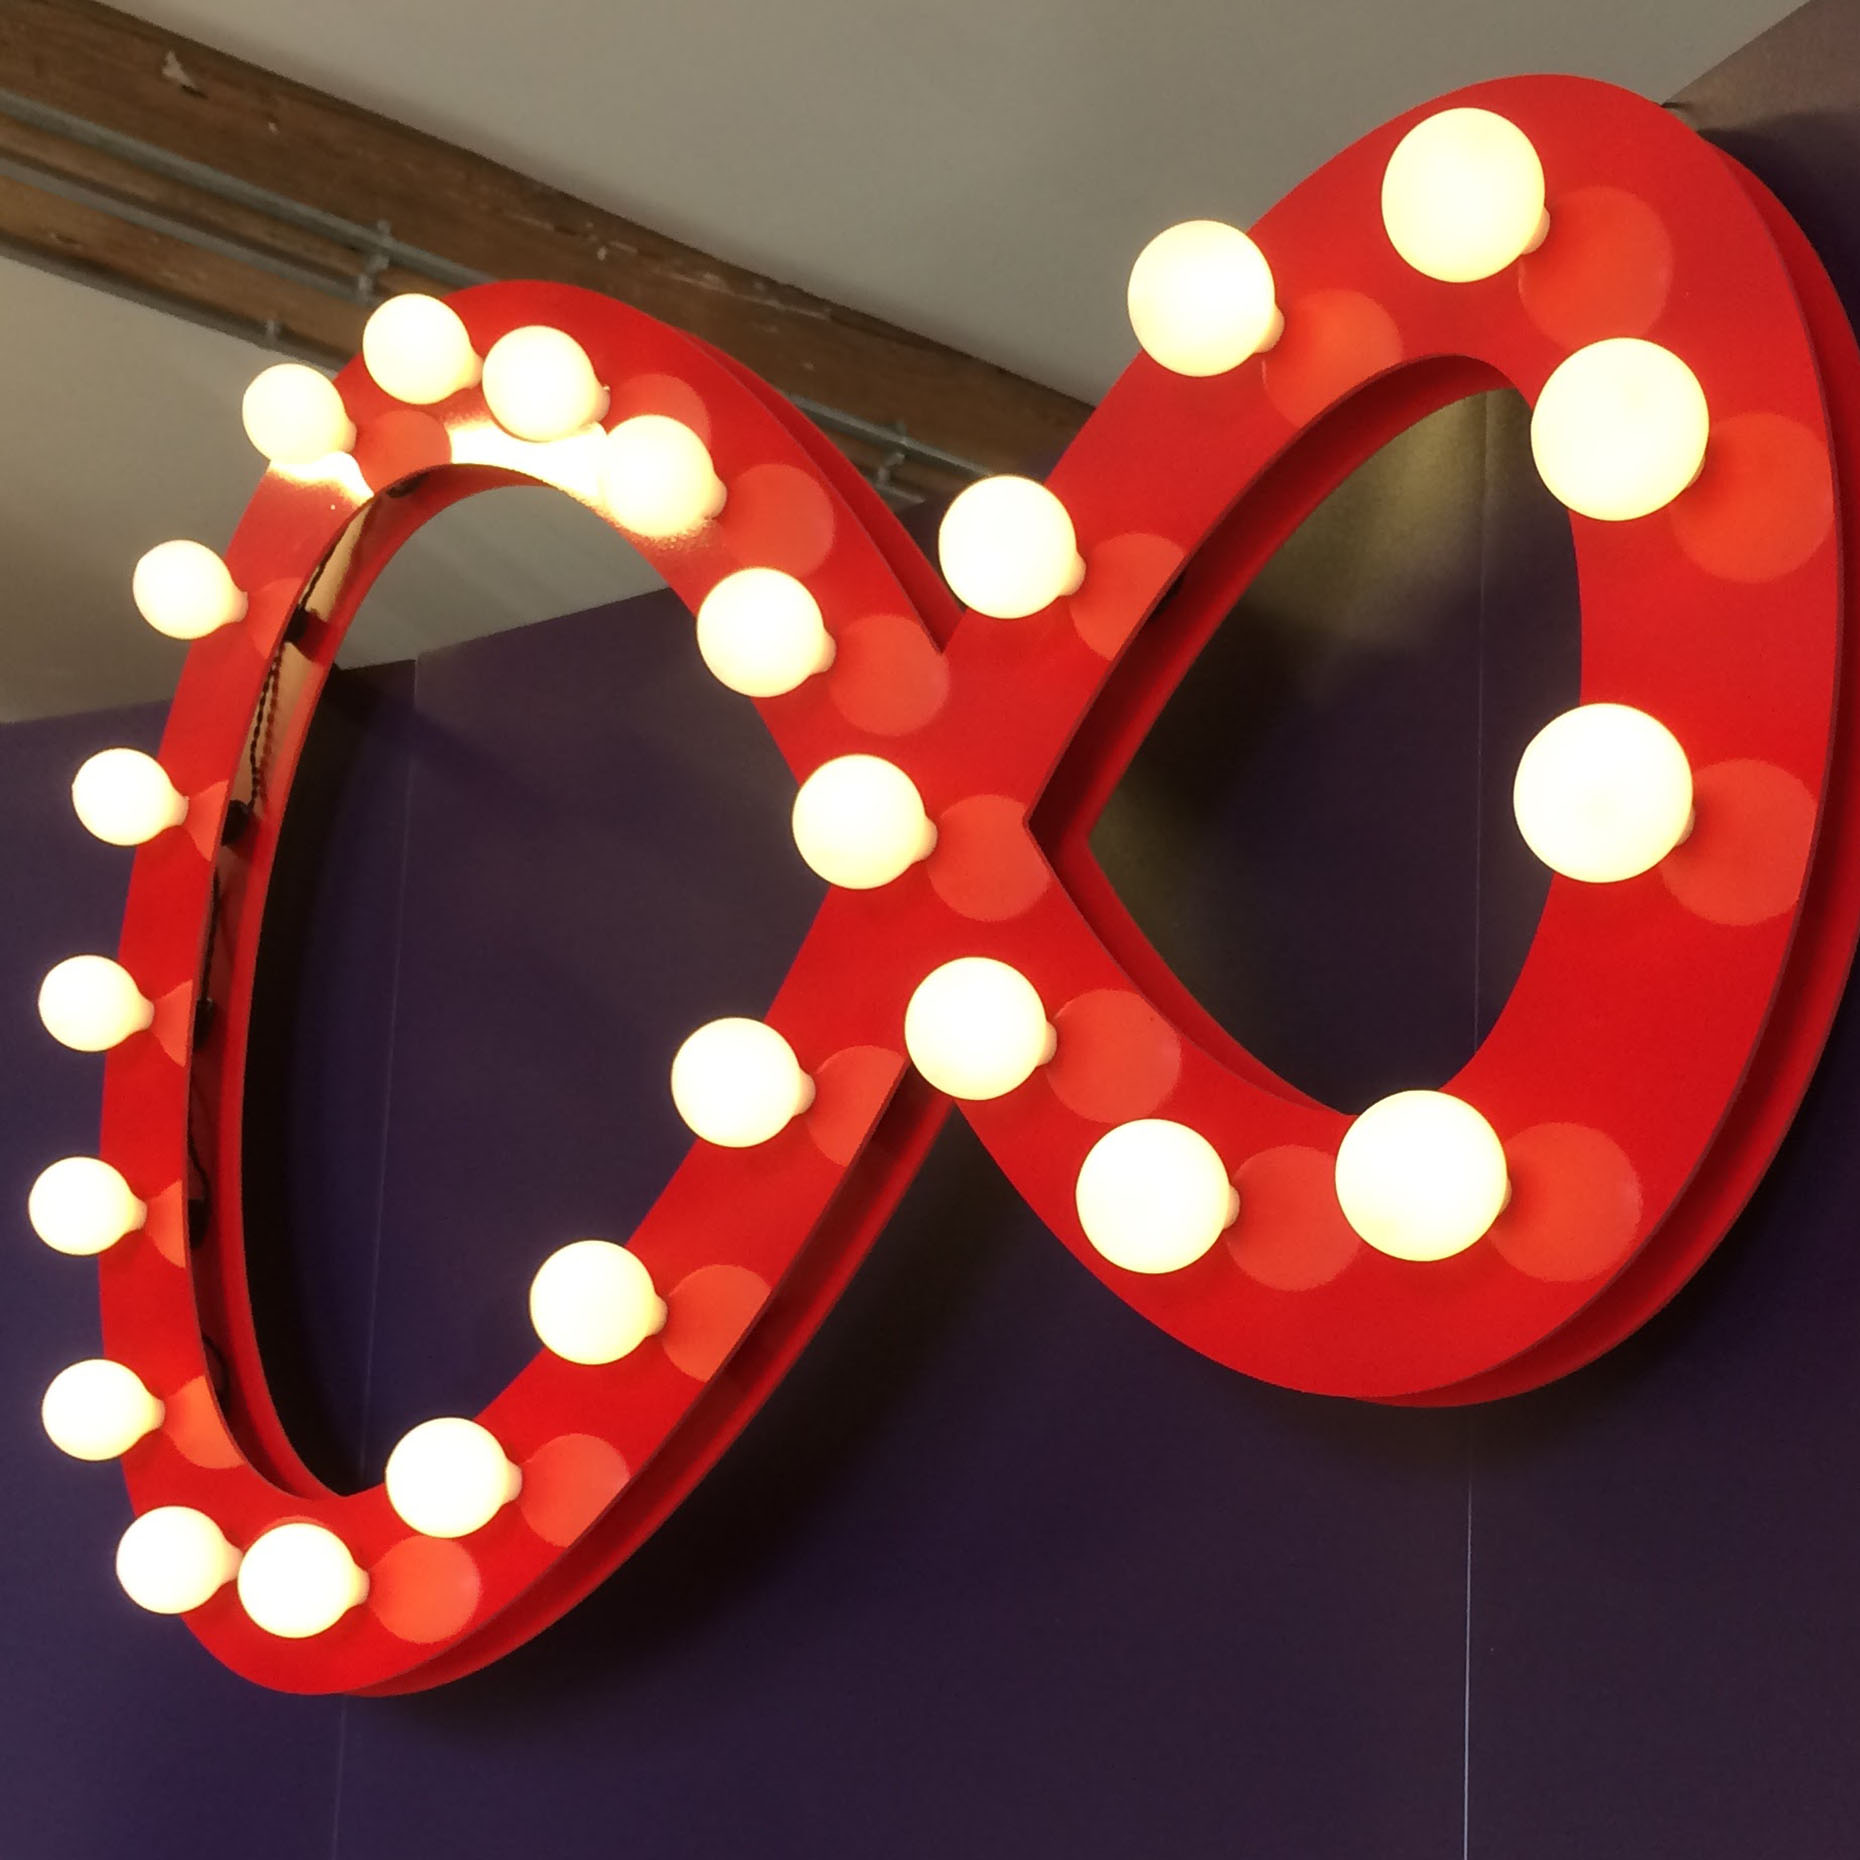 Virgin Media Light Sign